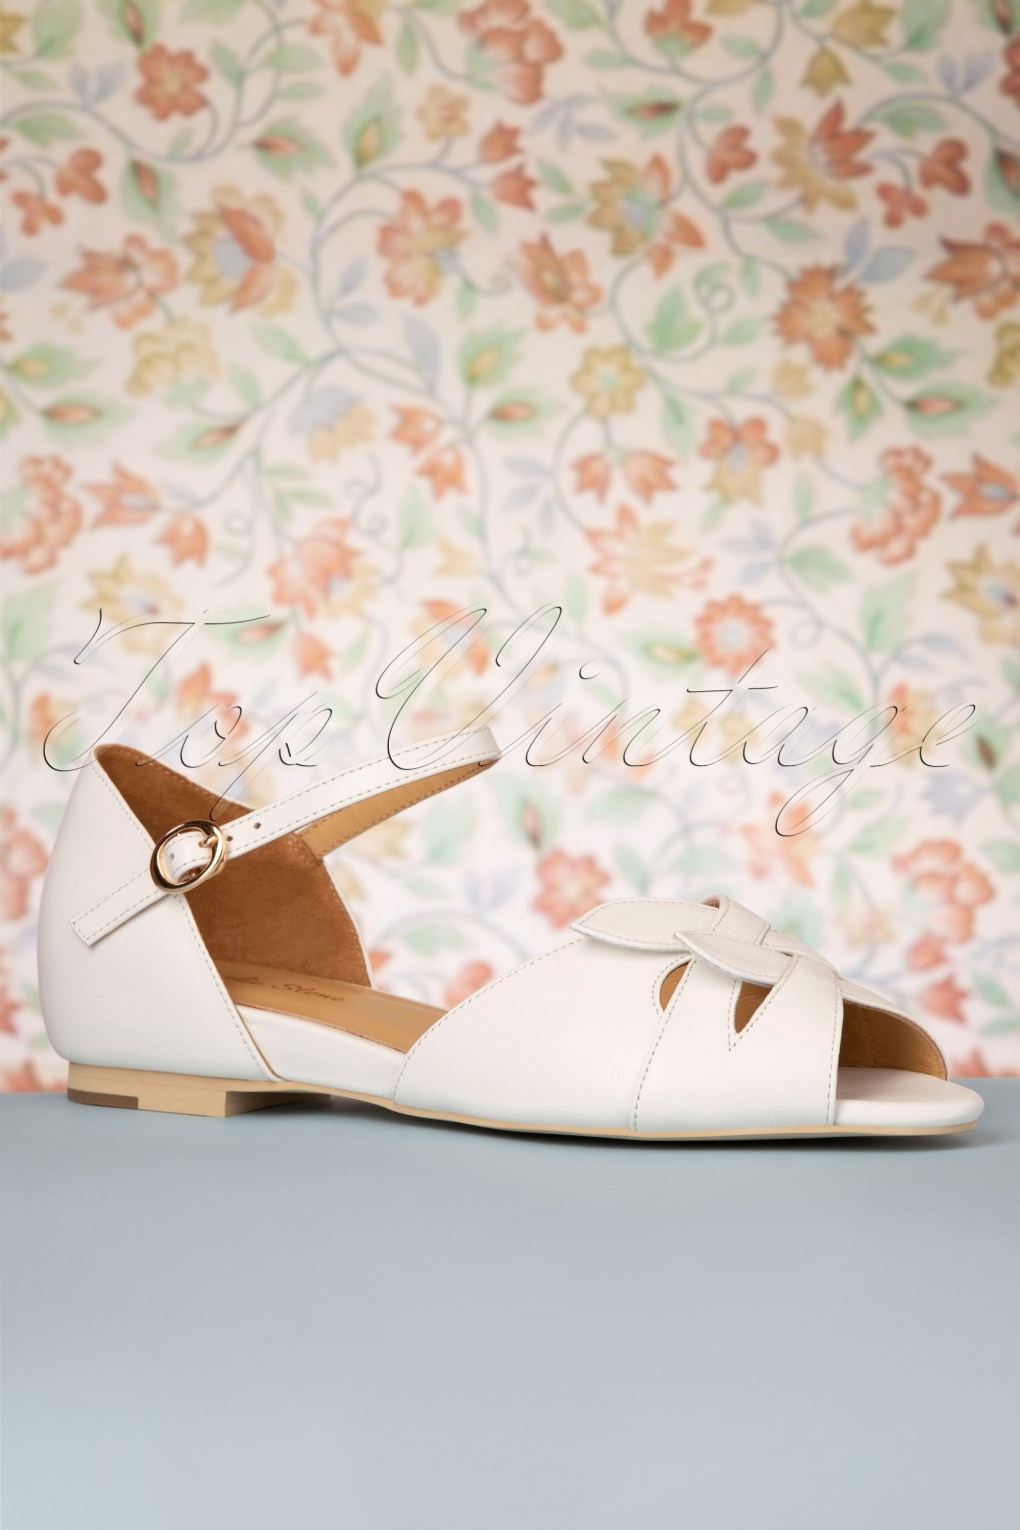 Retro Vintage Flats and Low Heel Shoes 50s Midge Peeptoe Flats in White £19.95 AT vintagedancer.com